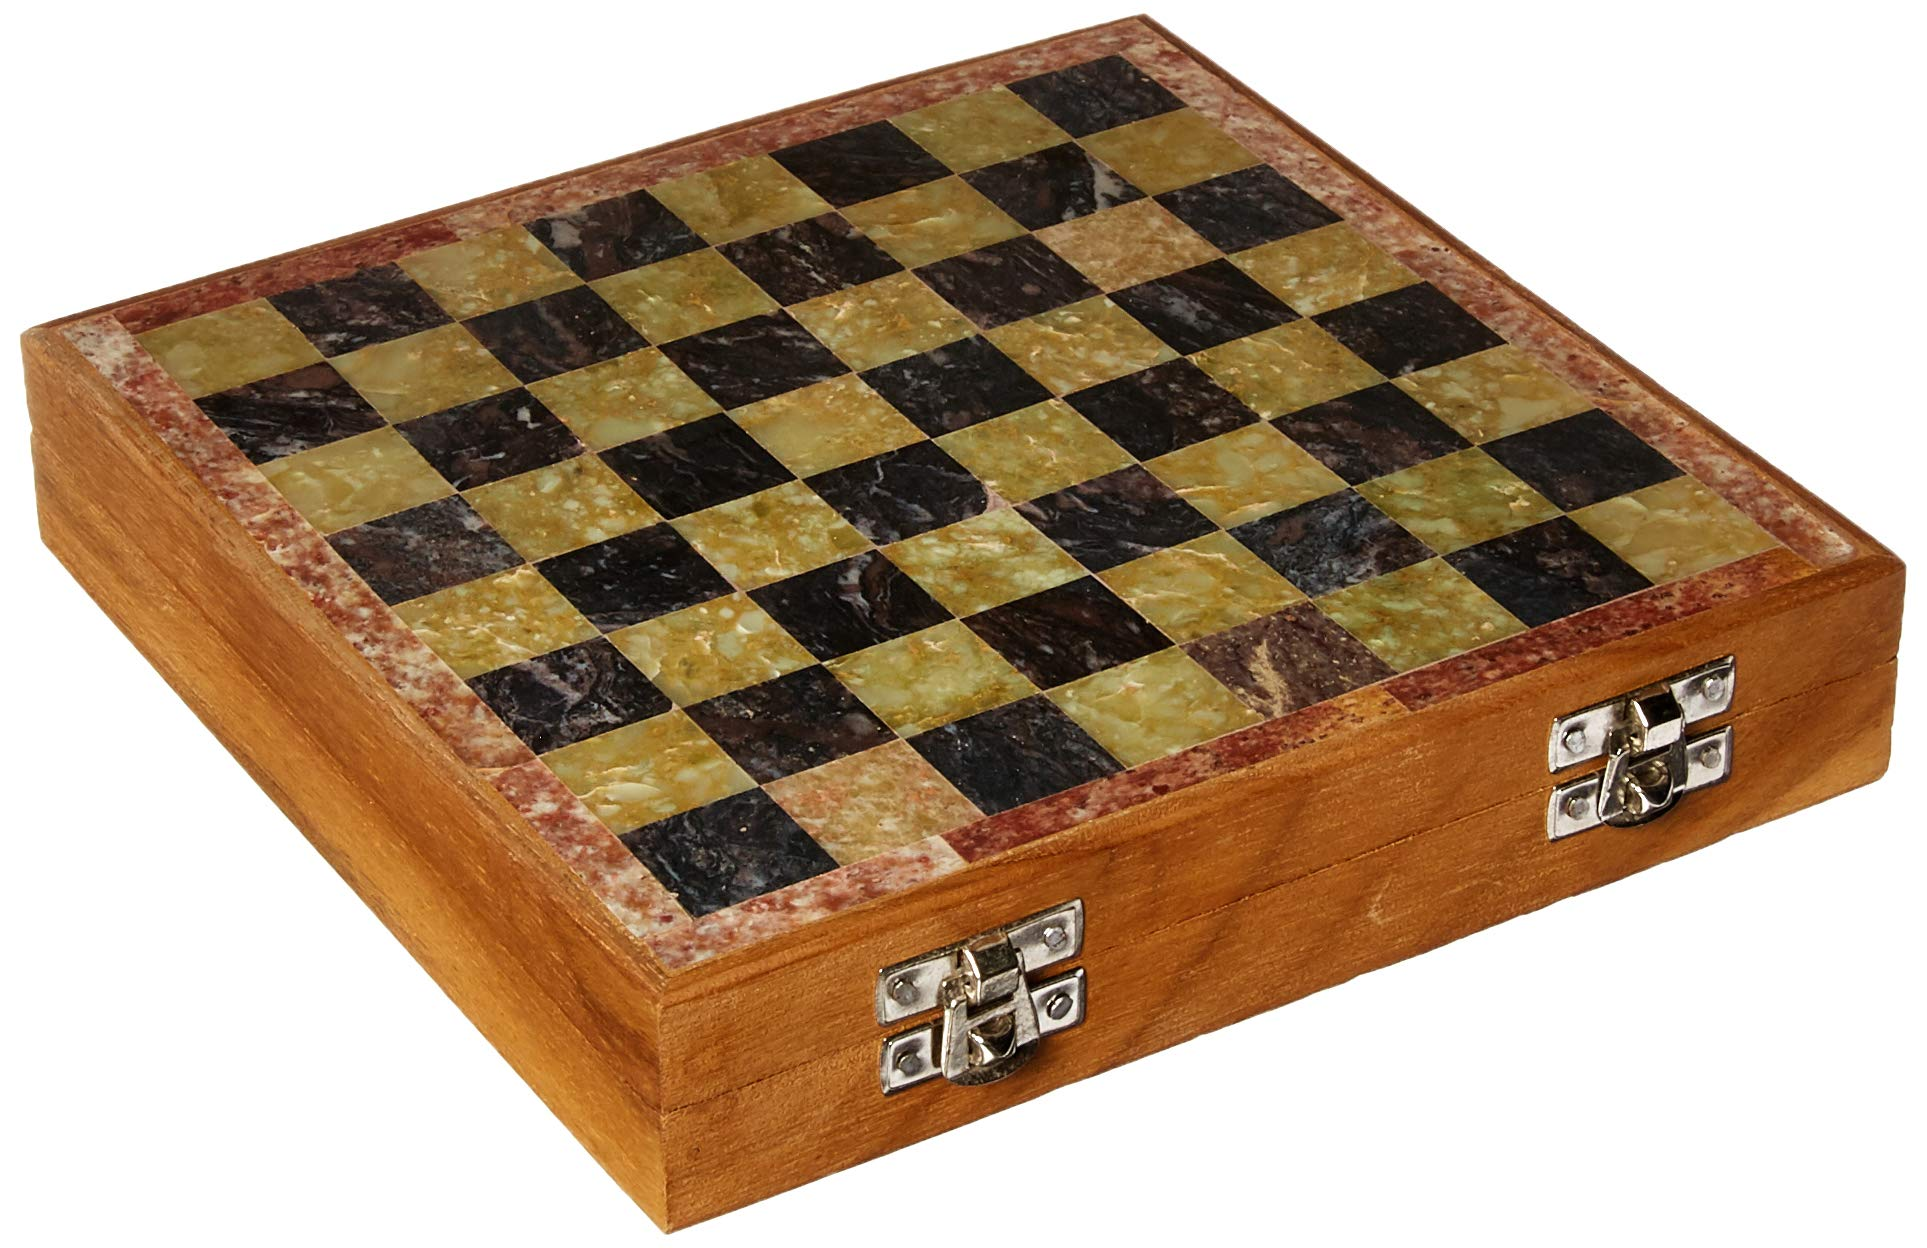 SouvNear 8x8 Inch Square Antique-Look Chess Board & Chessmen Set with Storage Box for Chessmen - Handmade Marble & Wood Chess Set - Travel Games from India